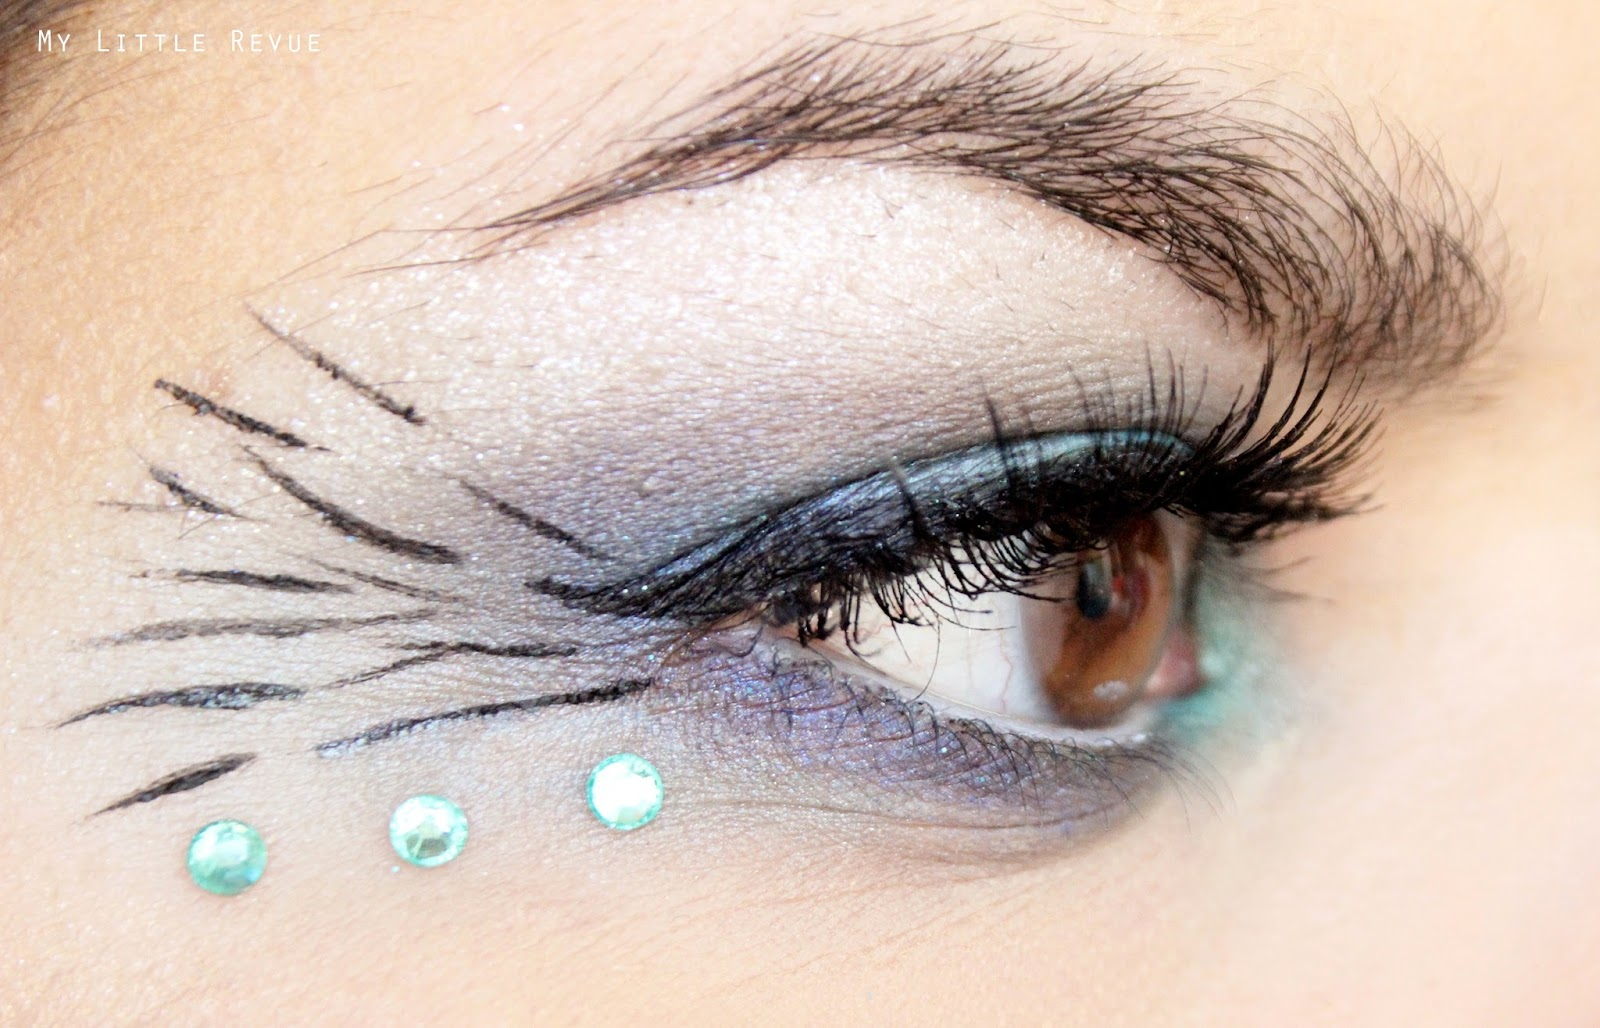 maquillage inspiration queue de paon eyeliner et strass